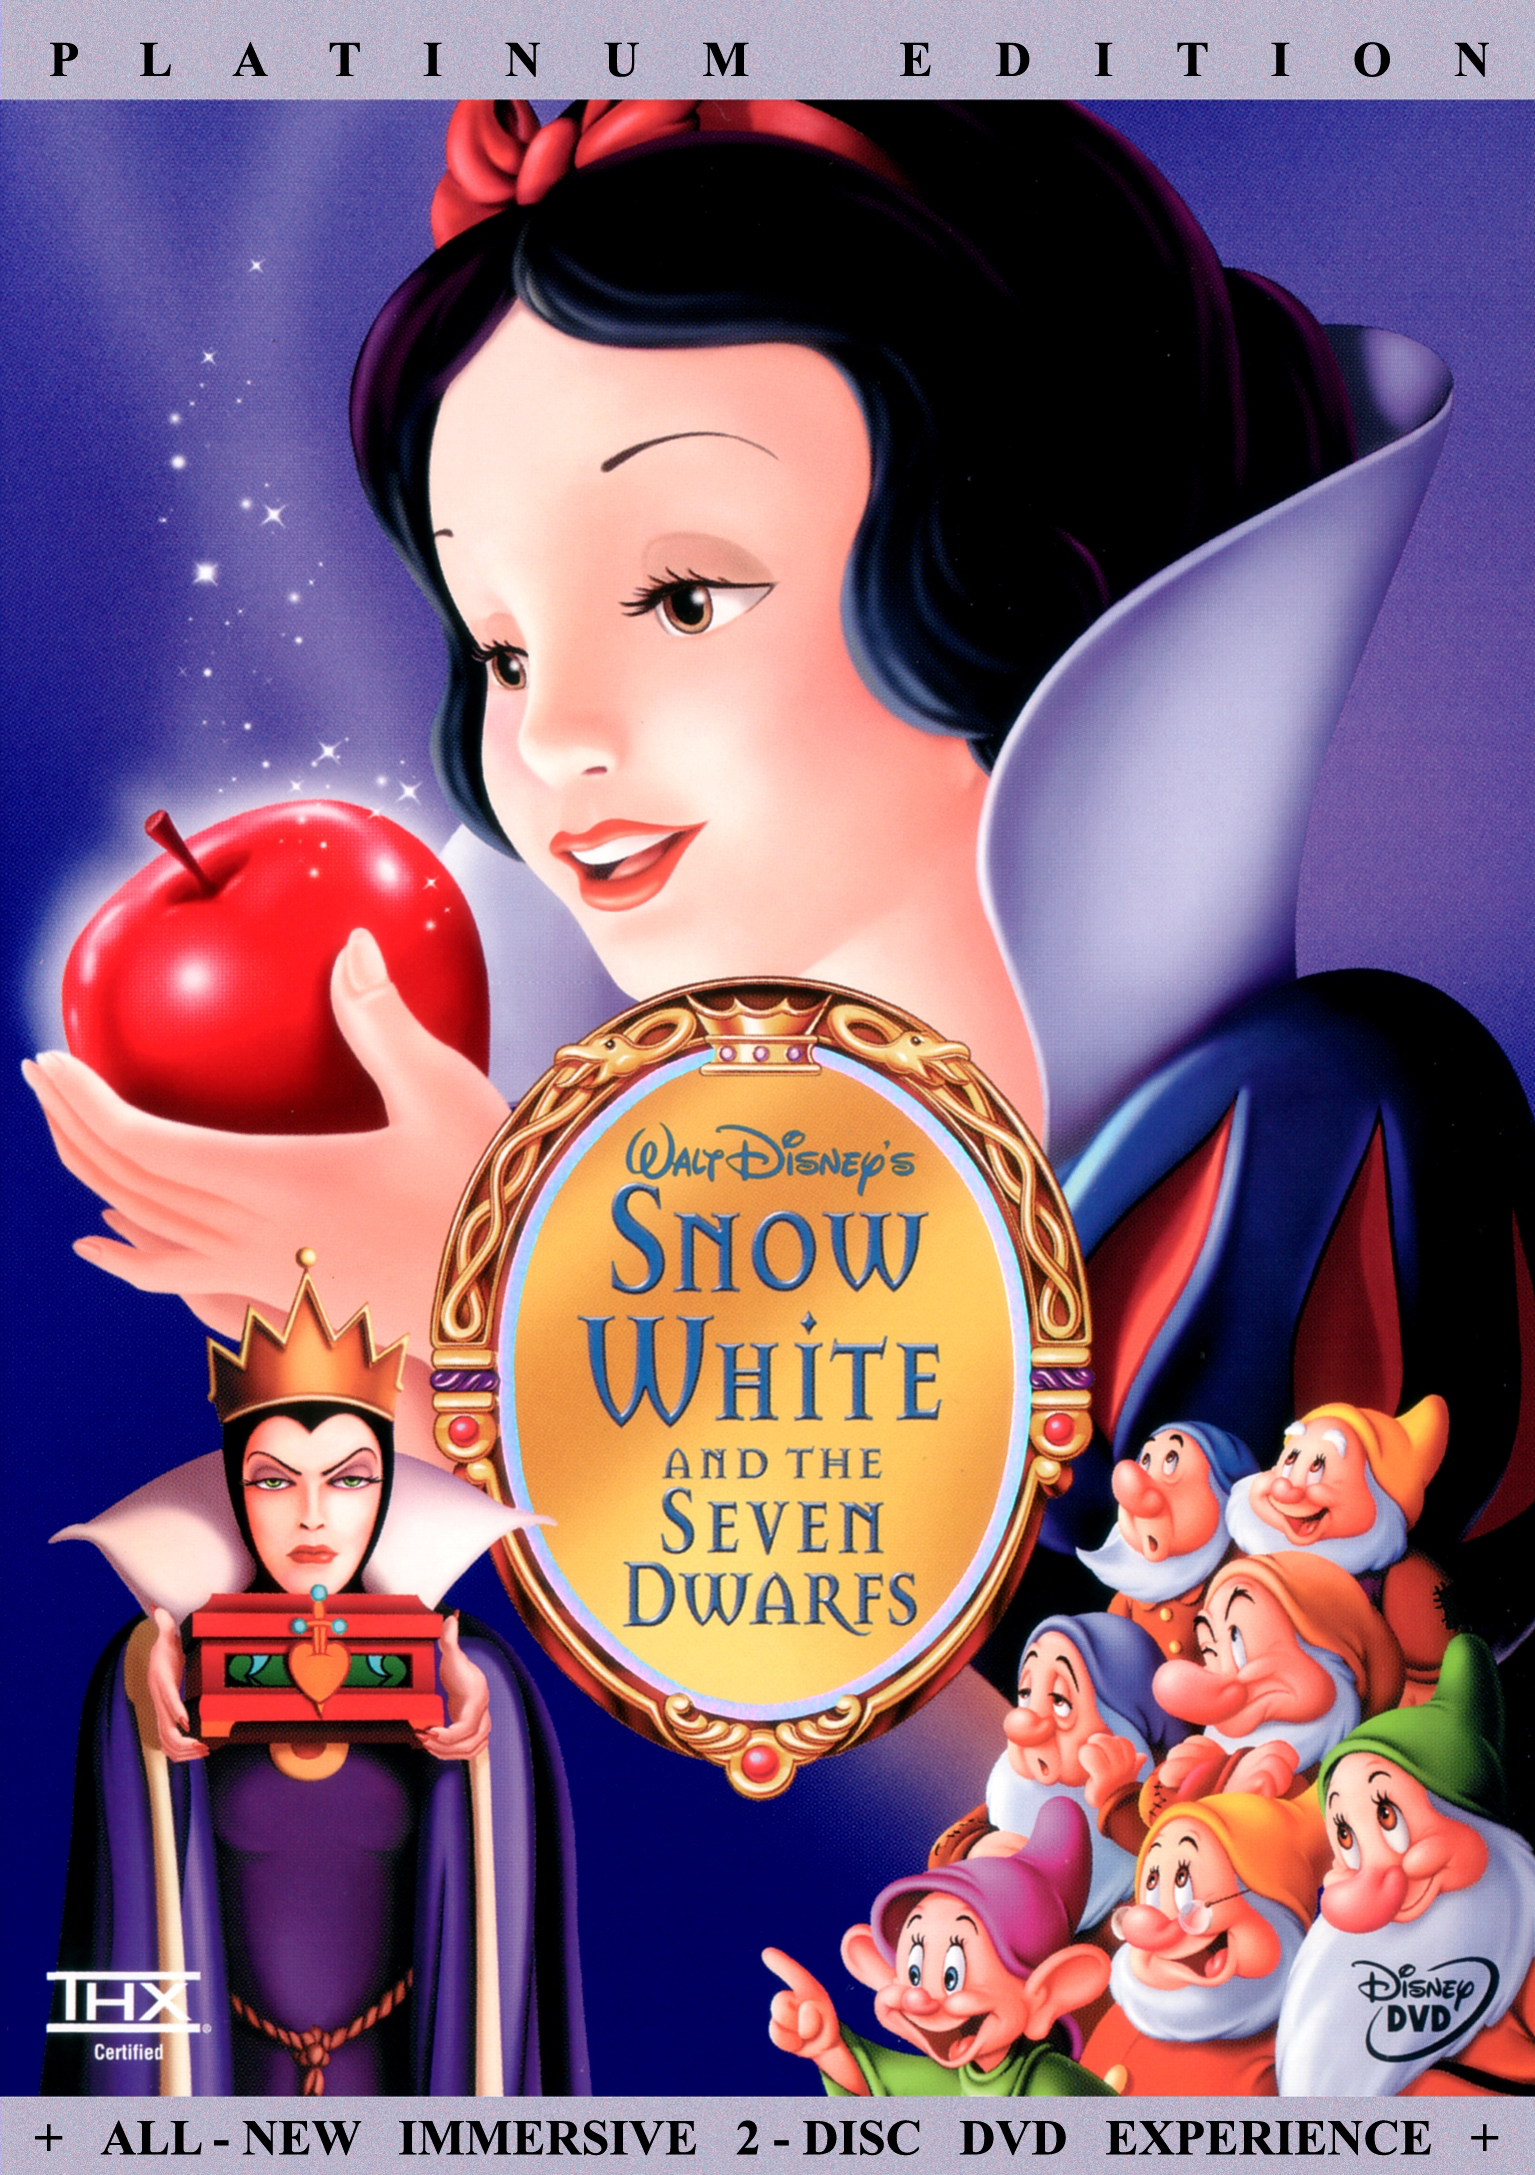 File:1. Snow White and the Seven Dwarfs (1937) (Platinum Edition 2-Disc DVD).jpg